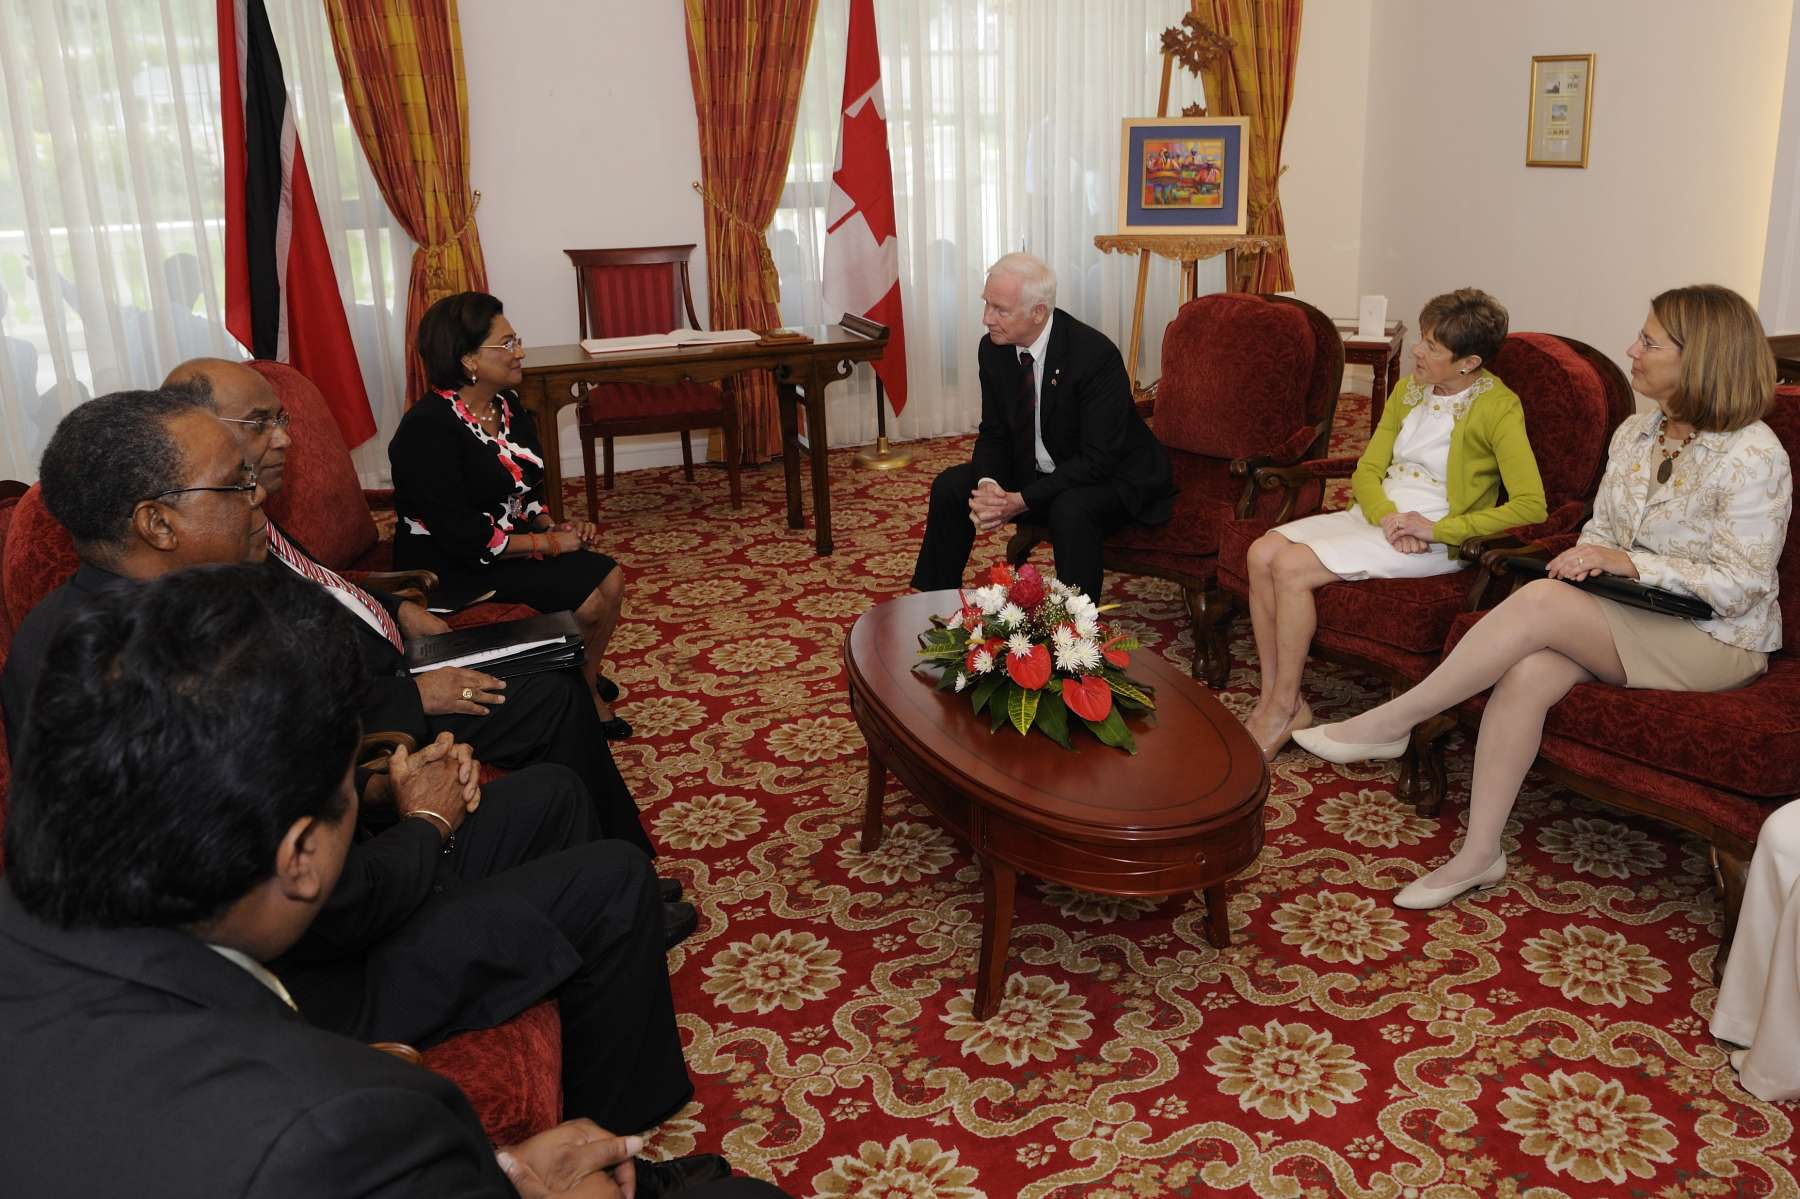 Their Excellencies met meet with the Honourable Kamla Persad-Bissessar, Prime Minister of the Republic of Trinidad and Tobago. An expanded meeting with the Canadian delegation followed.